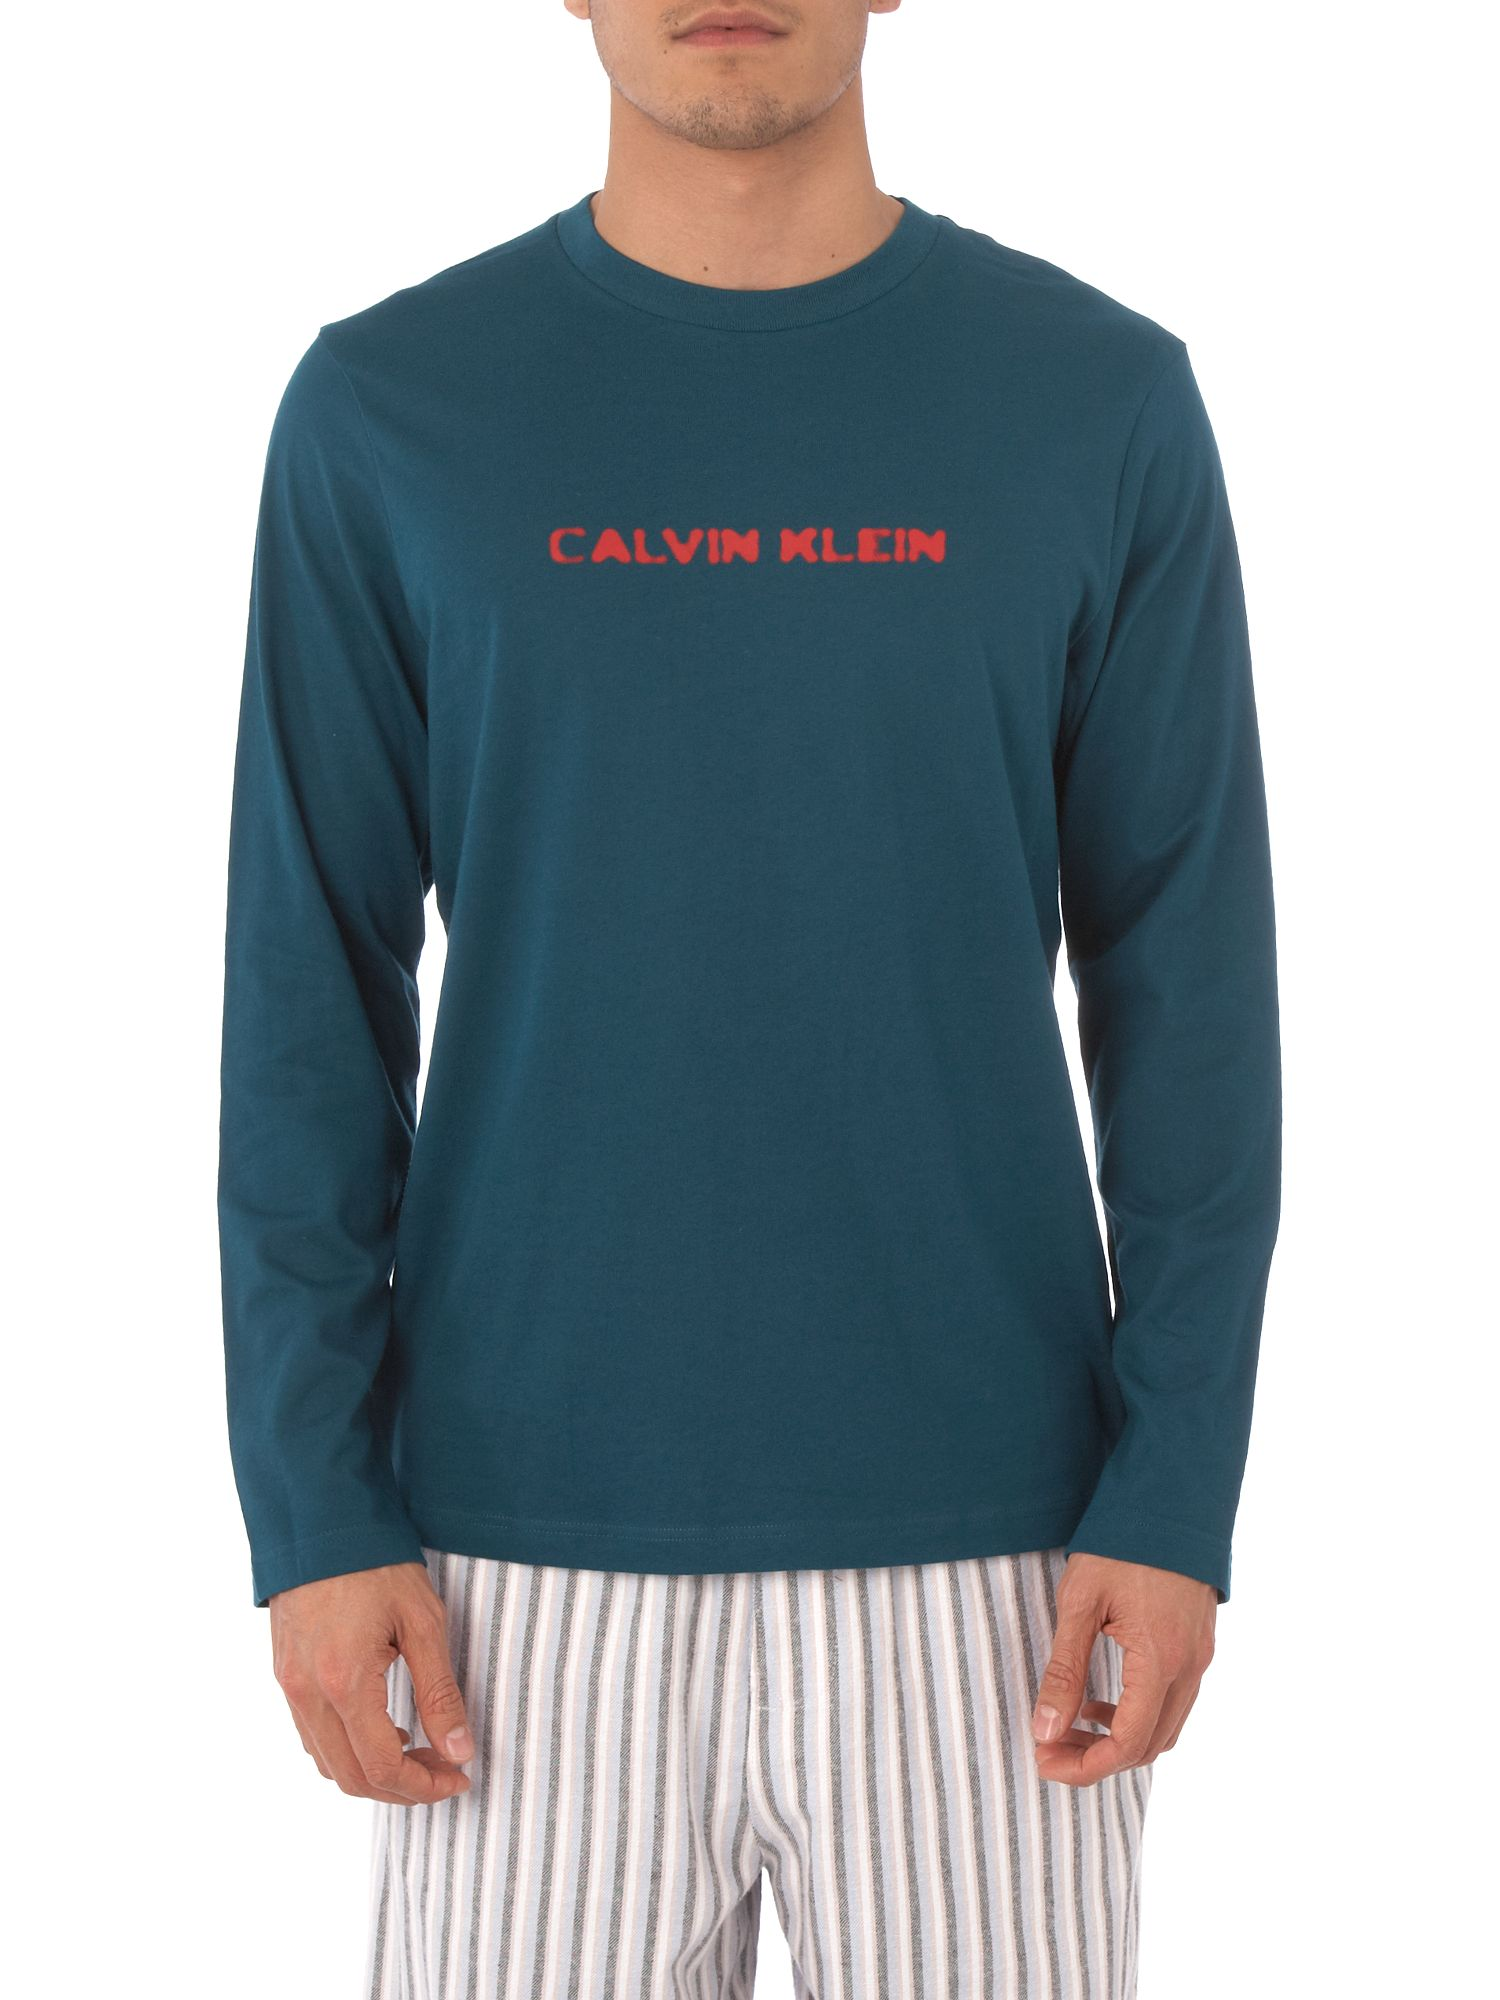 Calvin Klein Long-sleeved lounge T-shirt with logo - Aqua XL,M product image